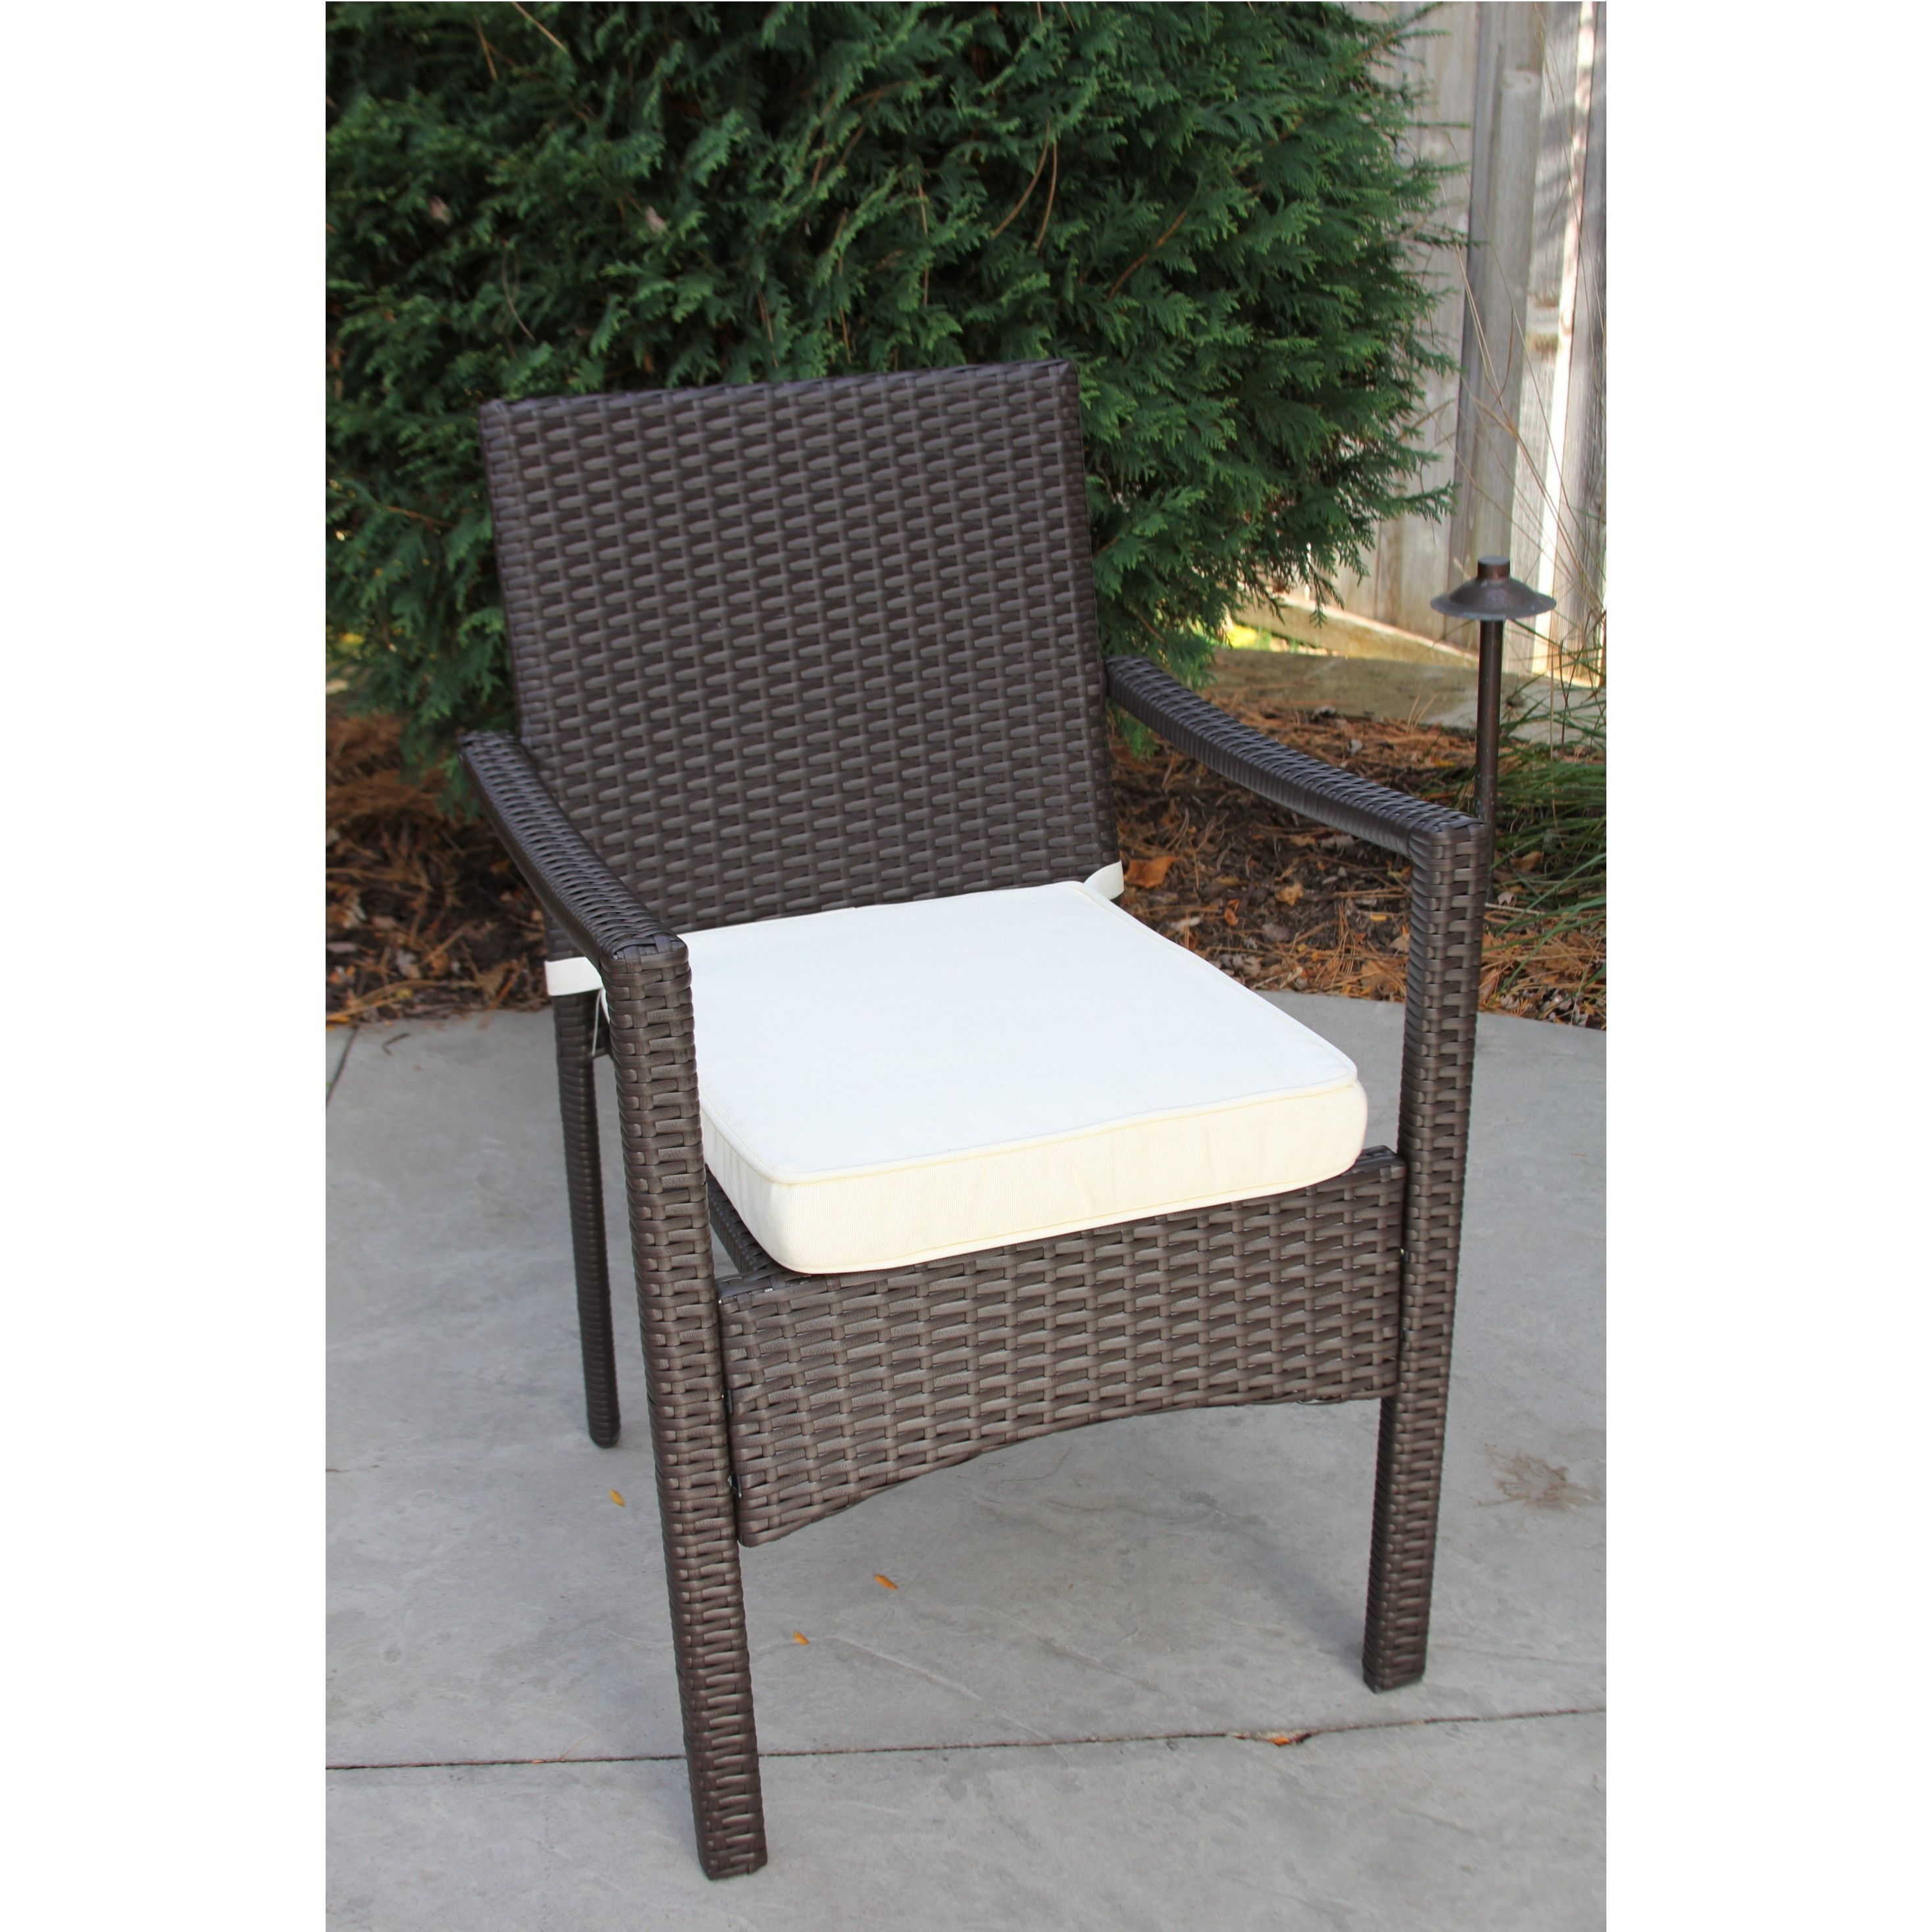 Discontinued Single Outdoor Espresso Brown Wicker Dining Chair W